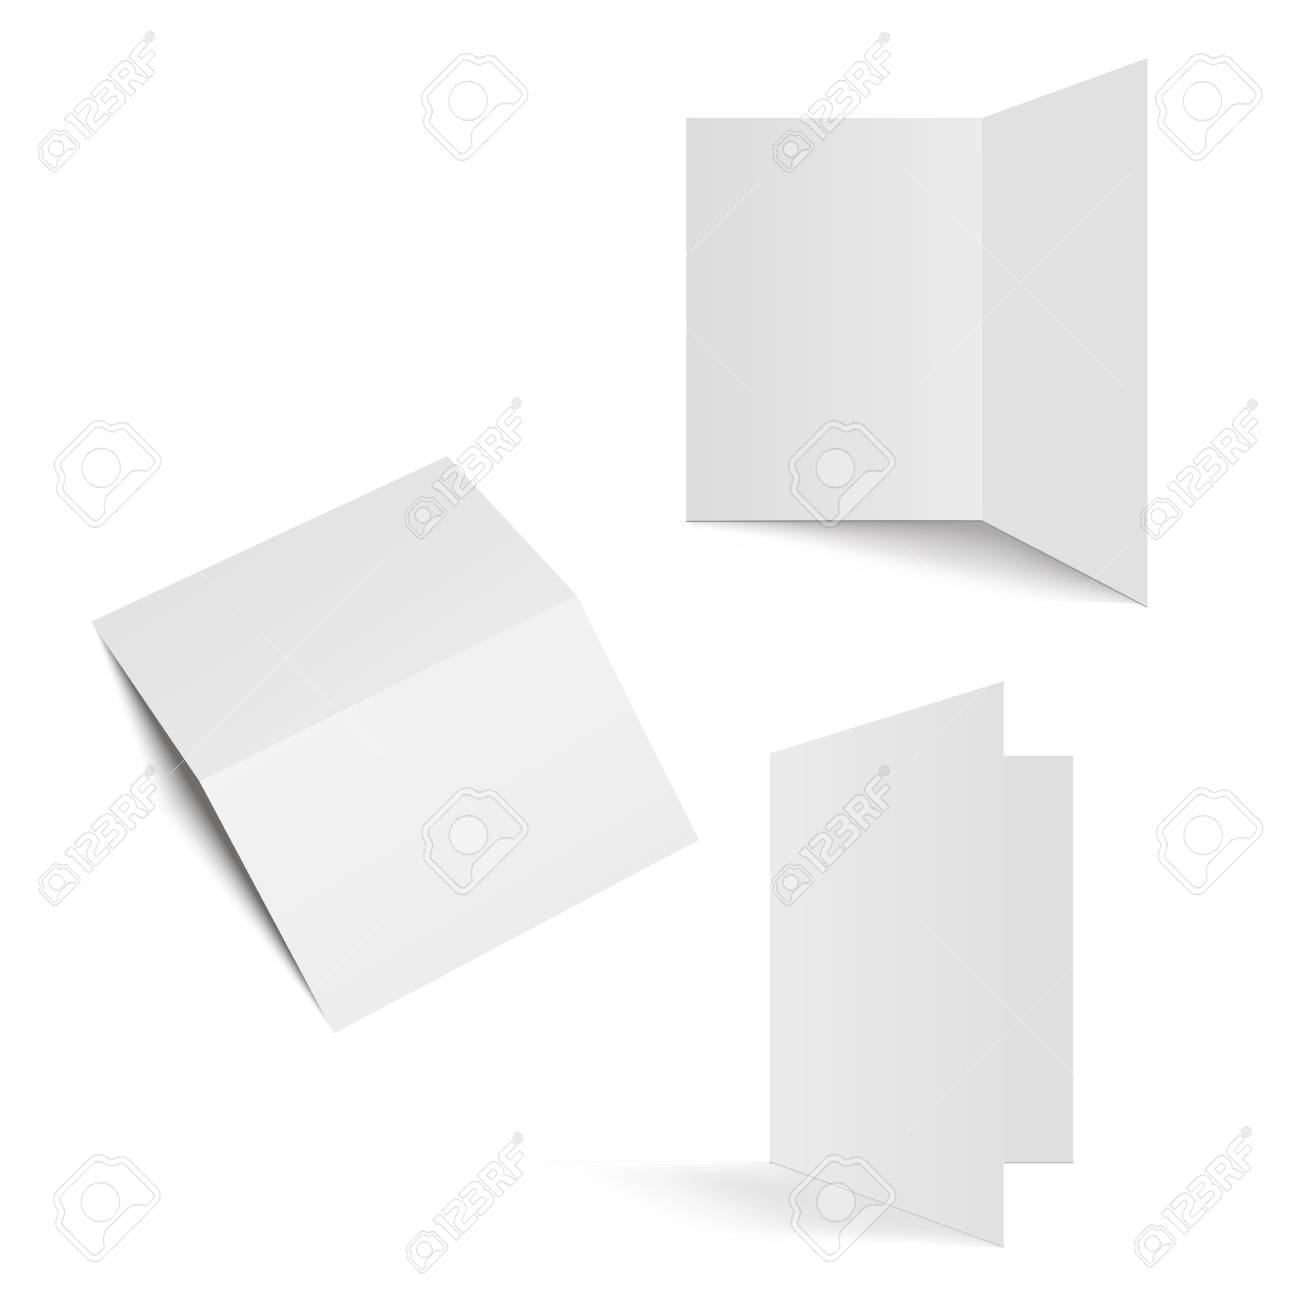 Half-fold brochure blank white template for mock up and presentation